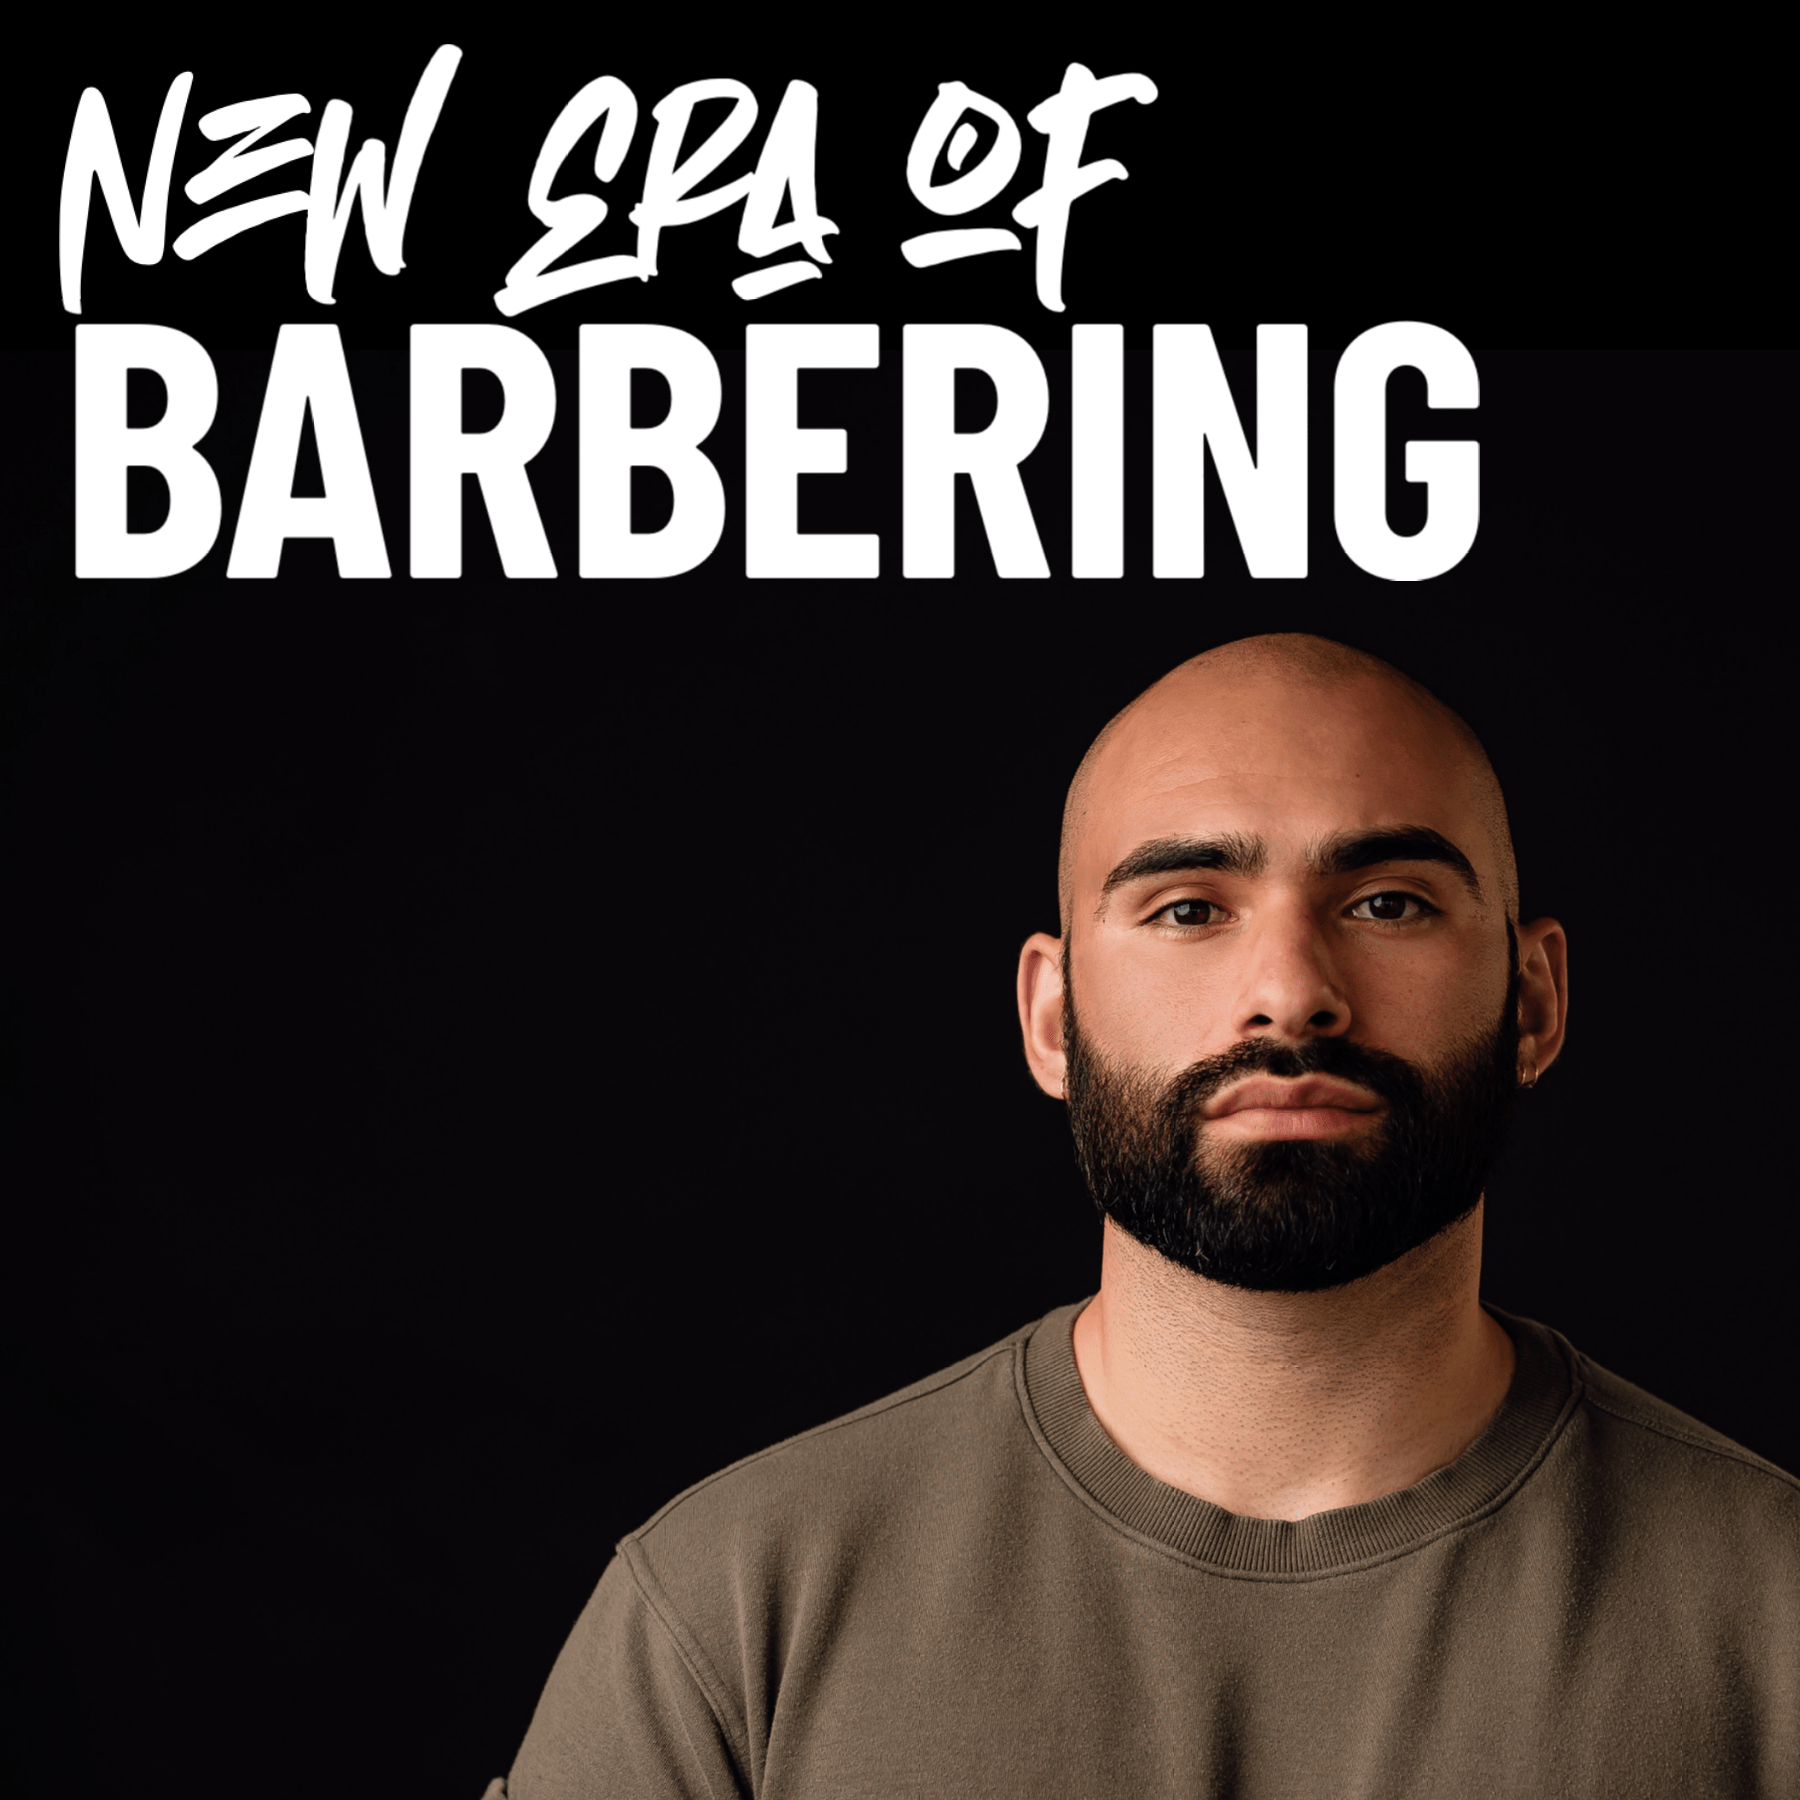 77. Why I don't own a barbershop (and never will)